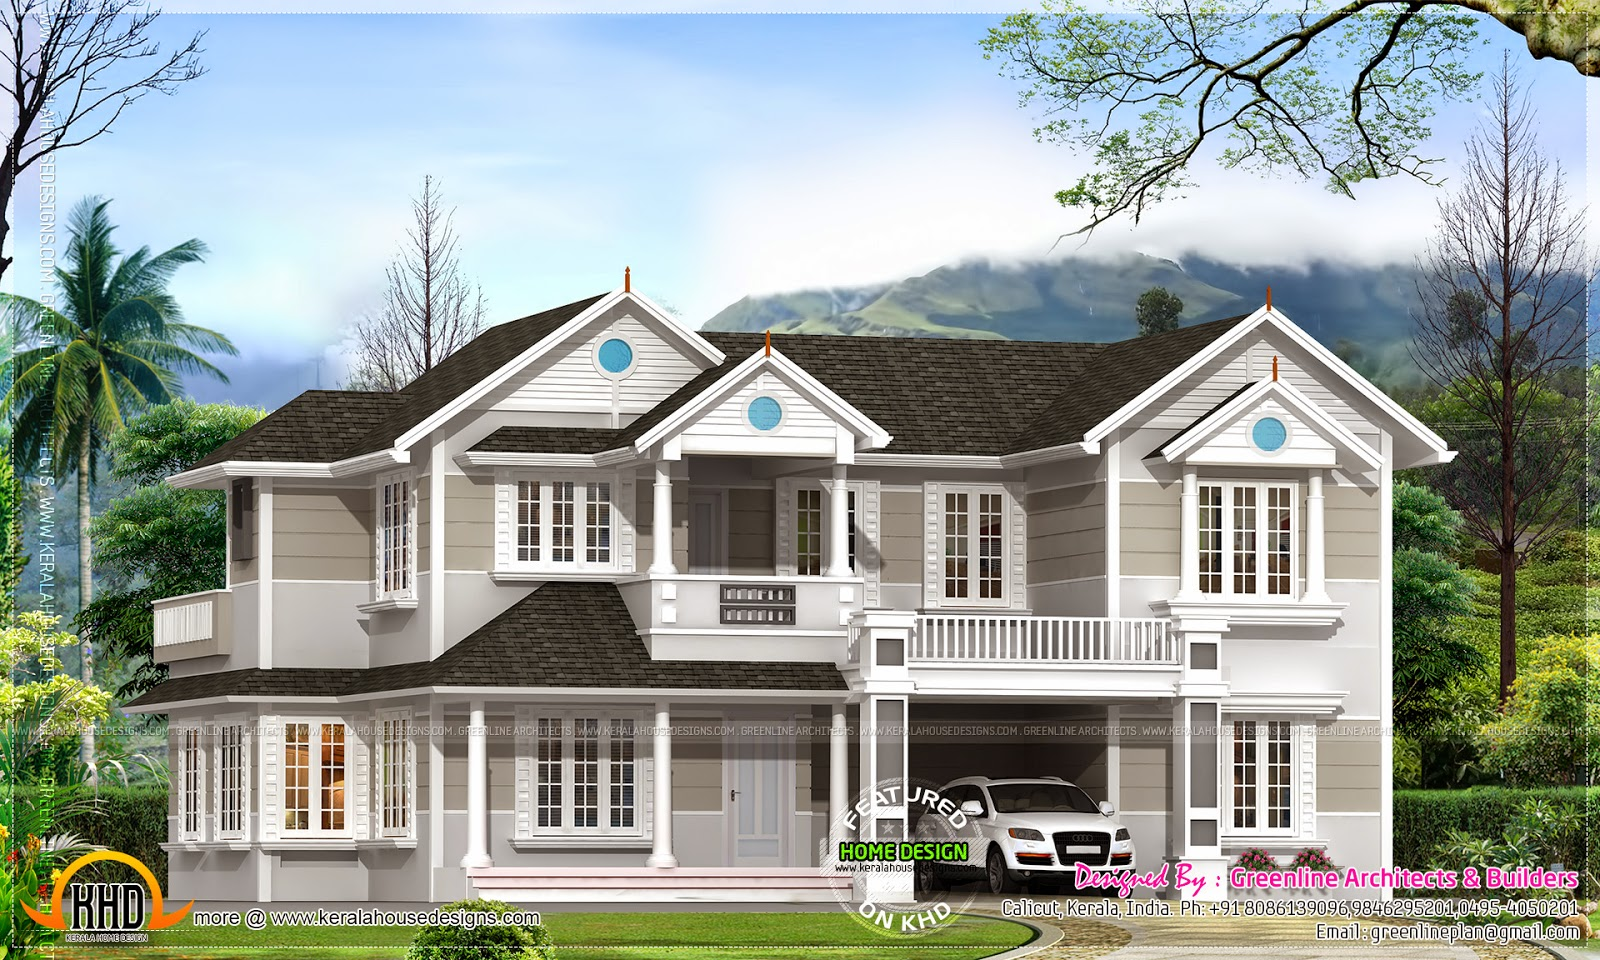 Colonial house plan kerala home design and floor plans for Colonial home designs